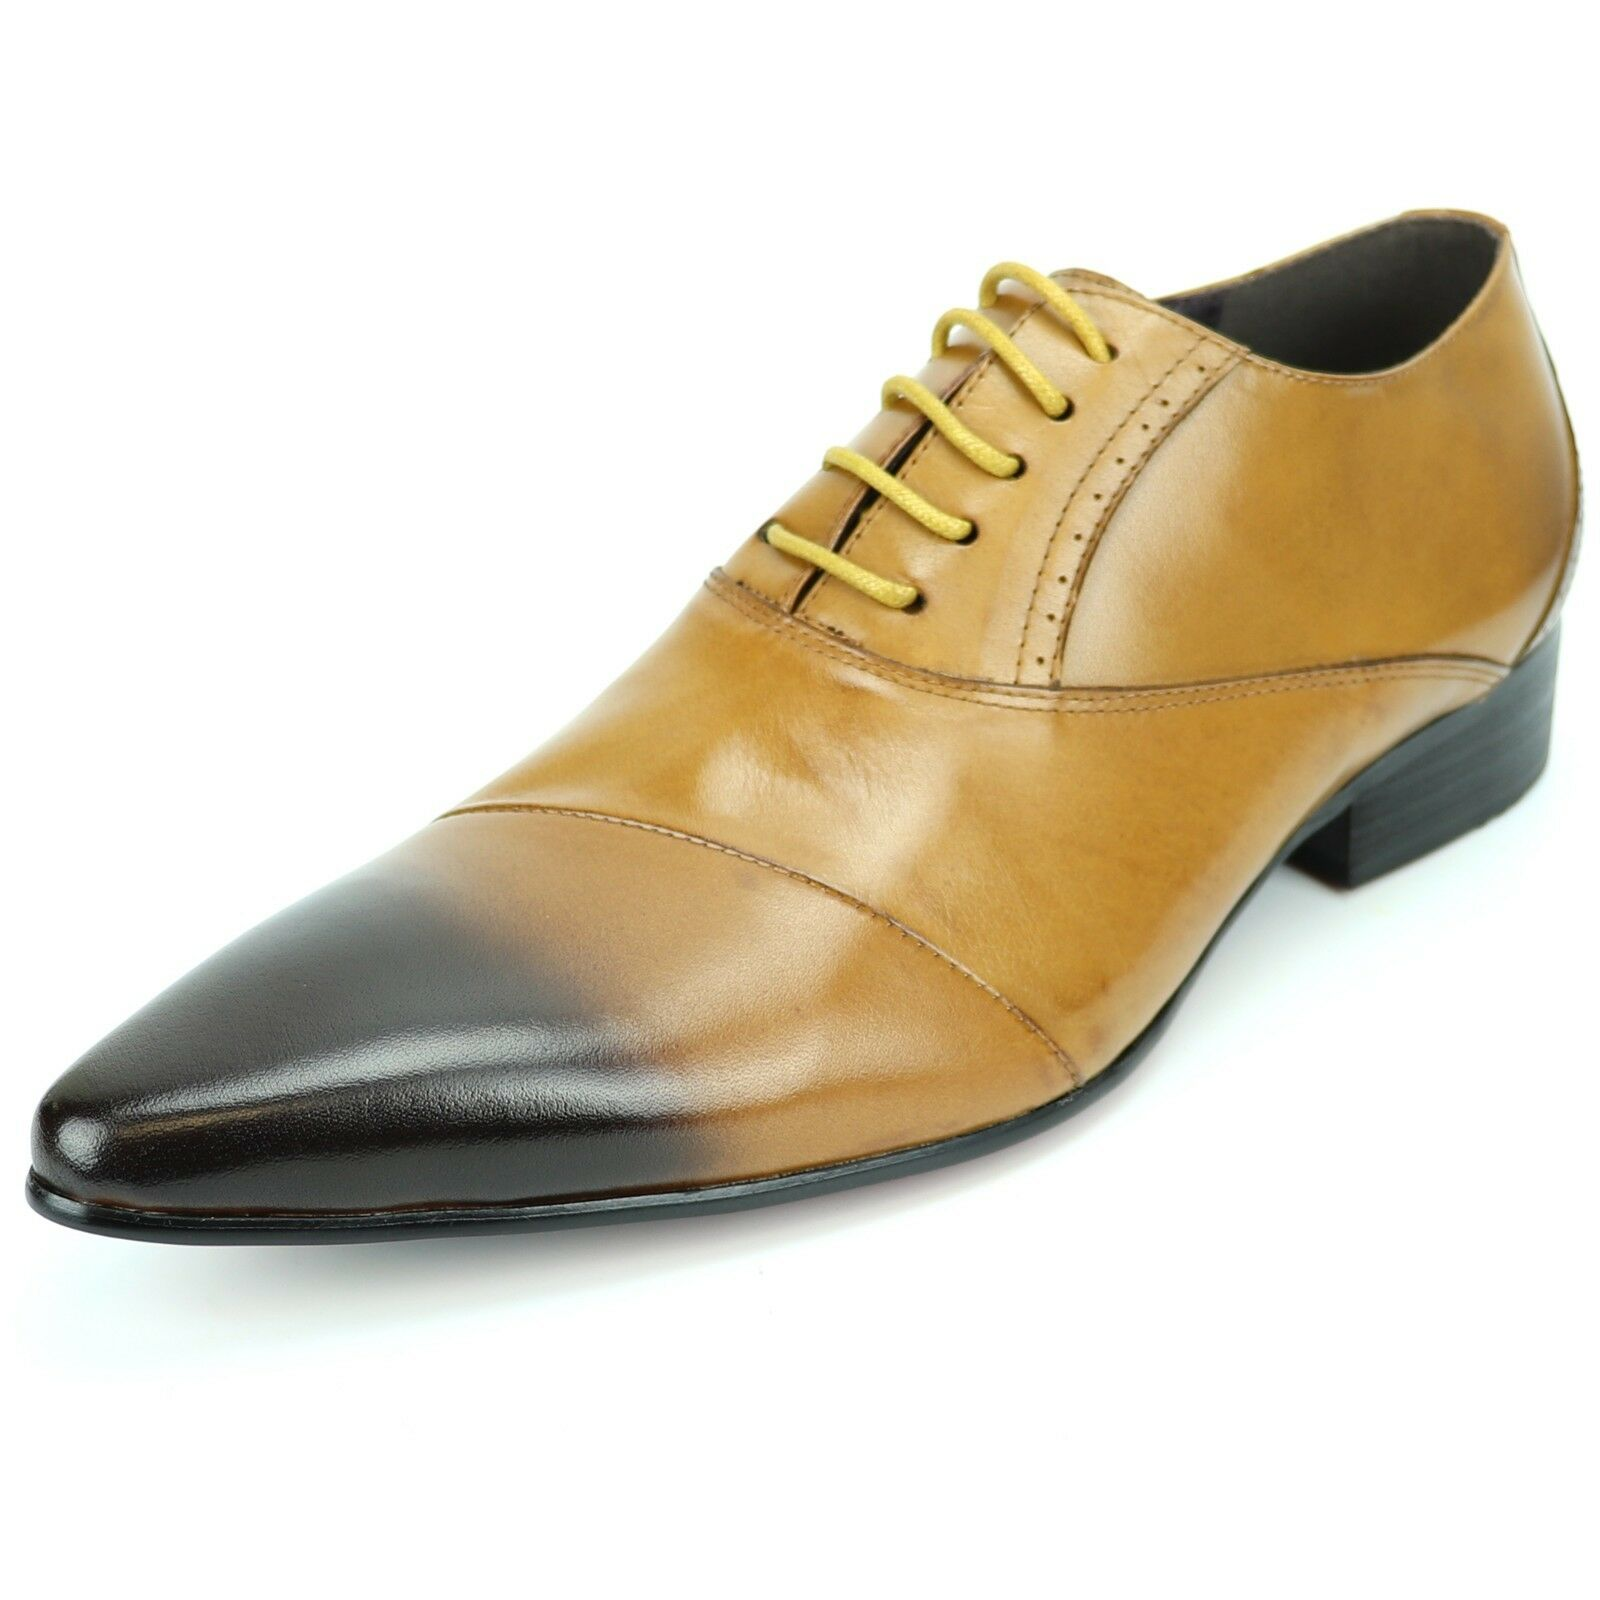 FI-7281 Genuine Tan Leather Lace up Fiesso by Aurelio Garcia